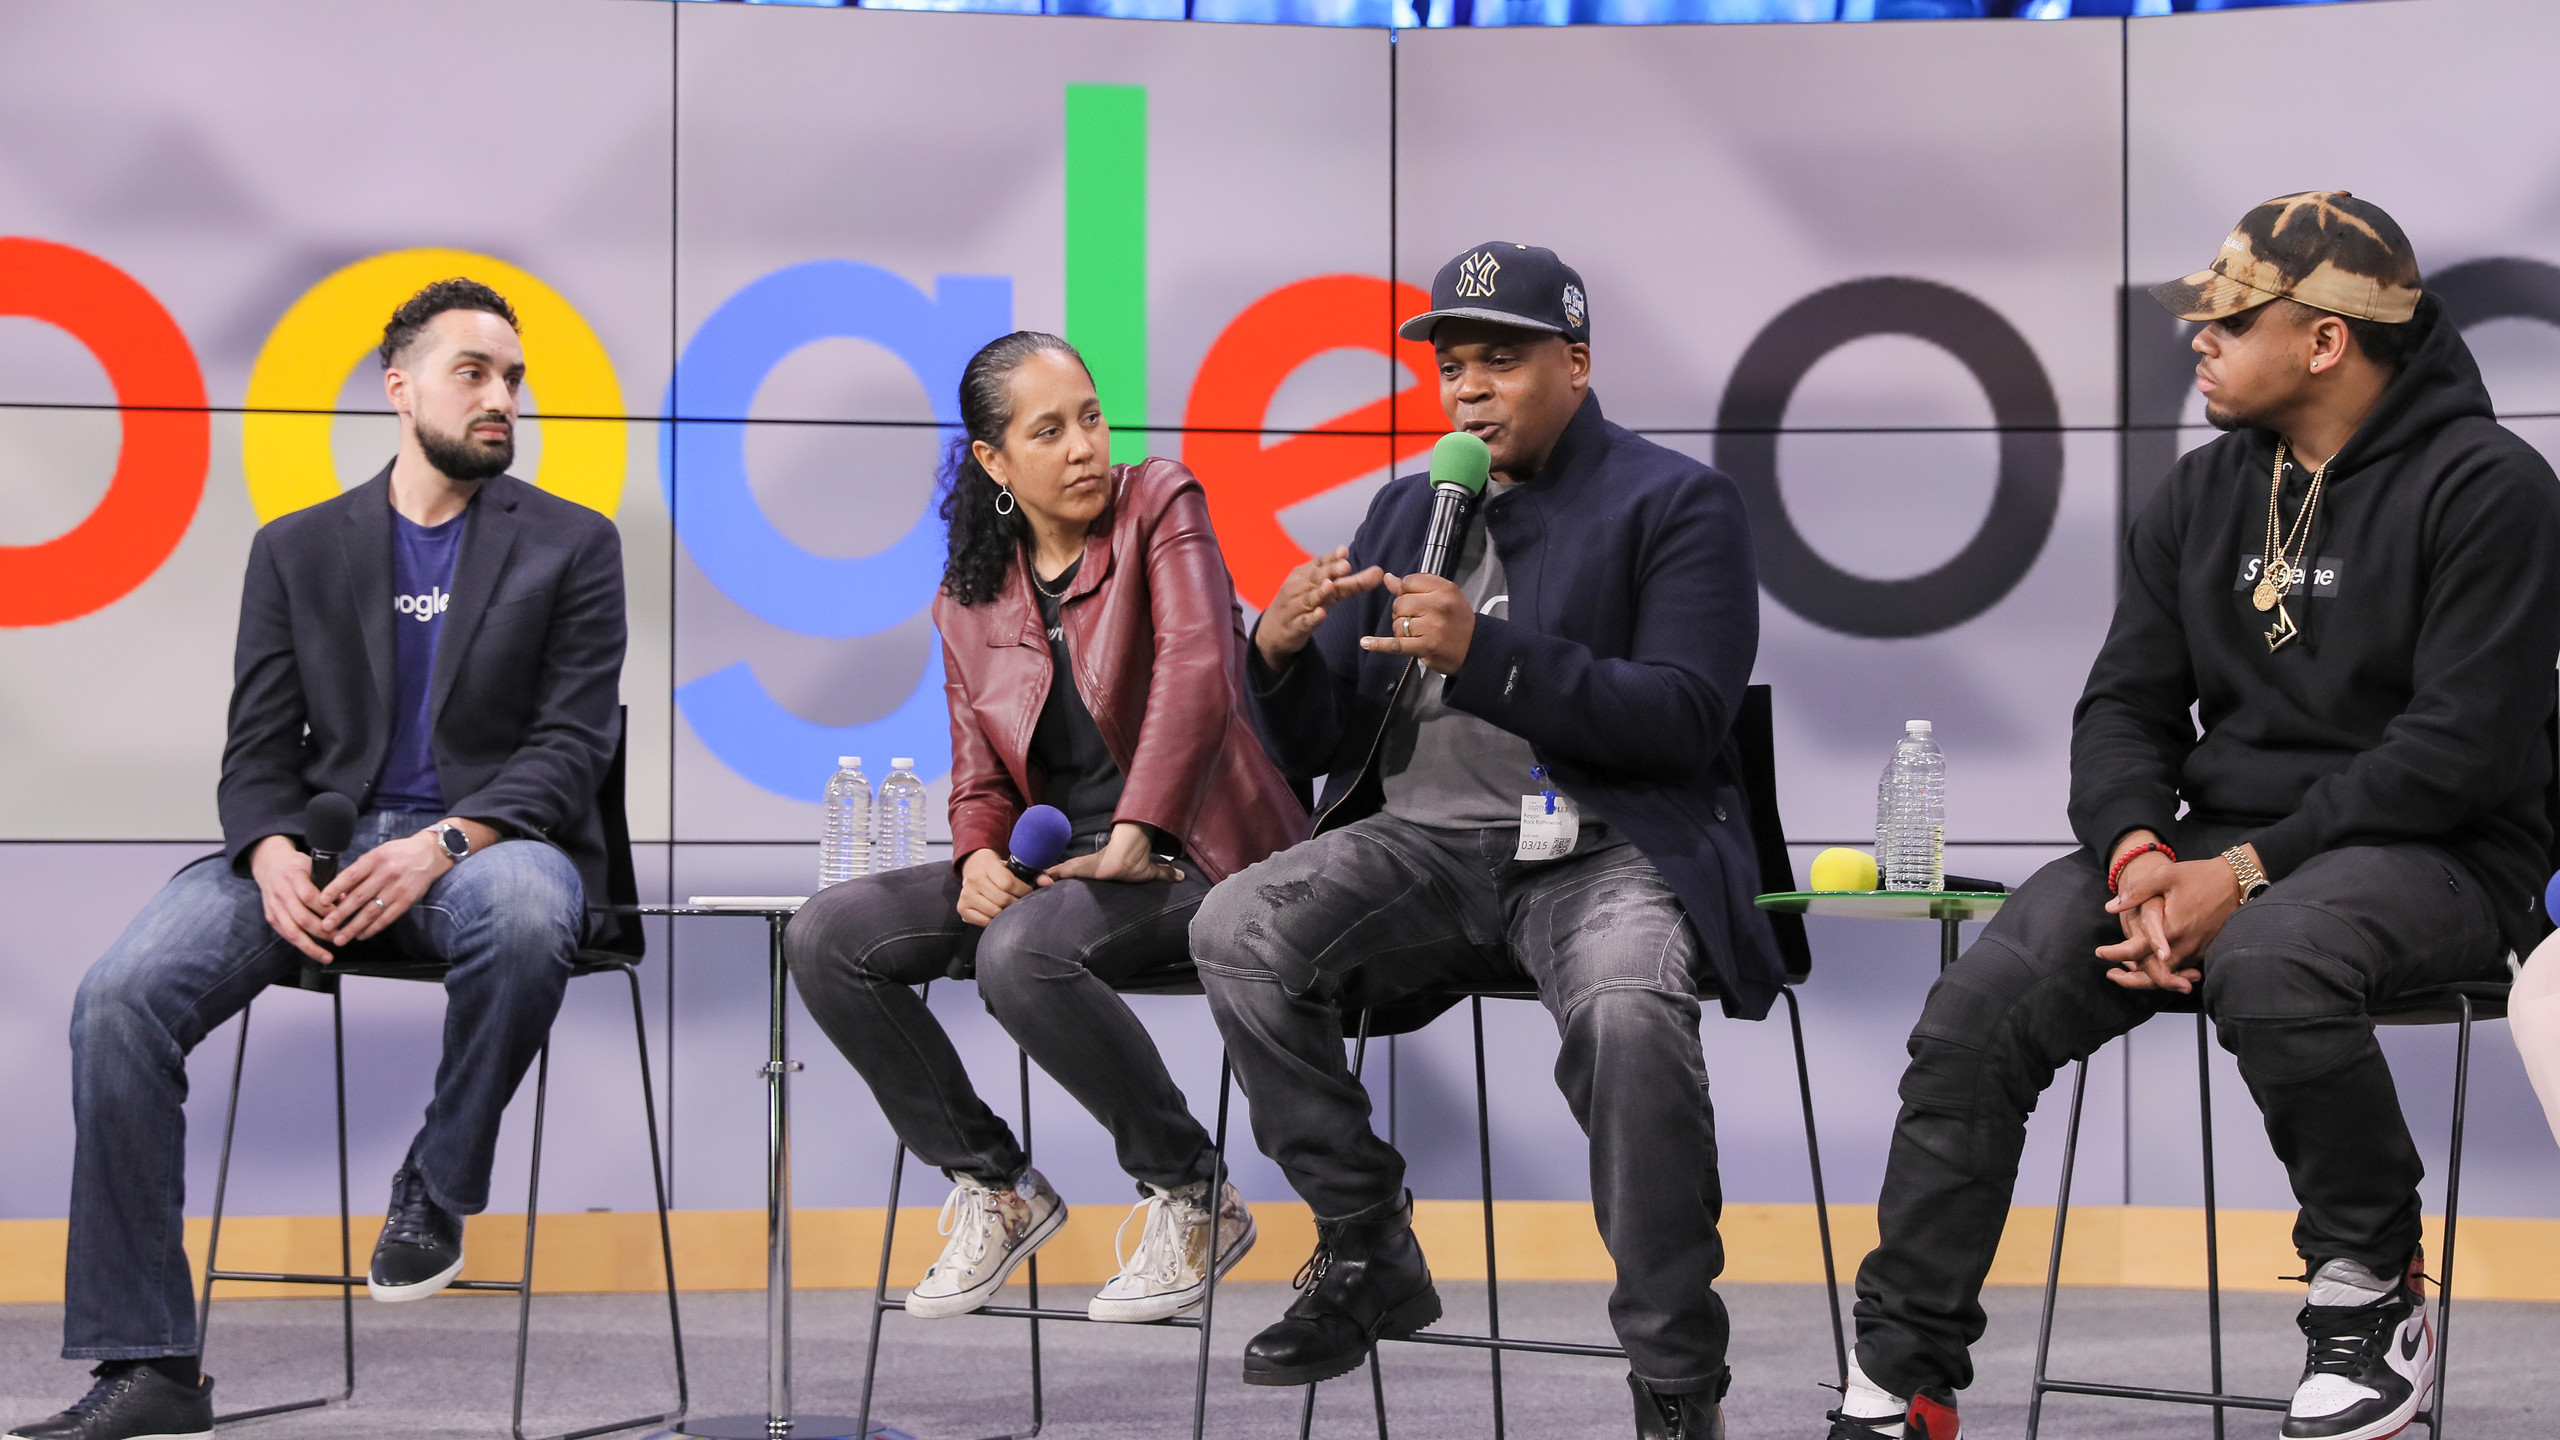 Reggie Bythewood during Q&A at Google